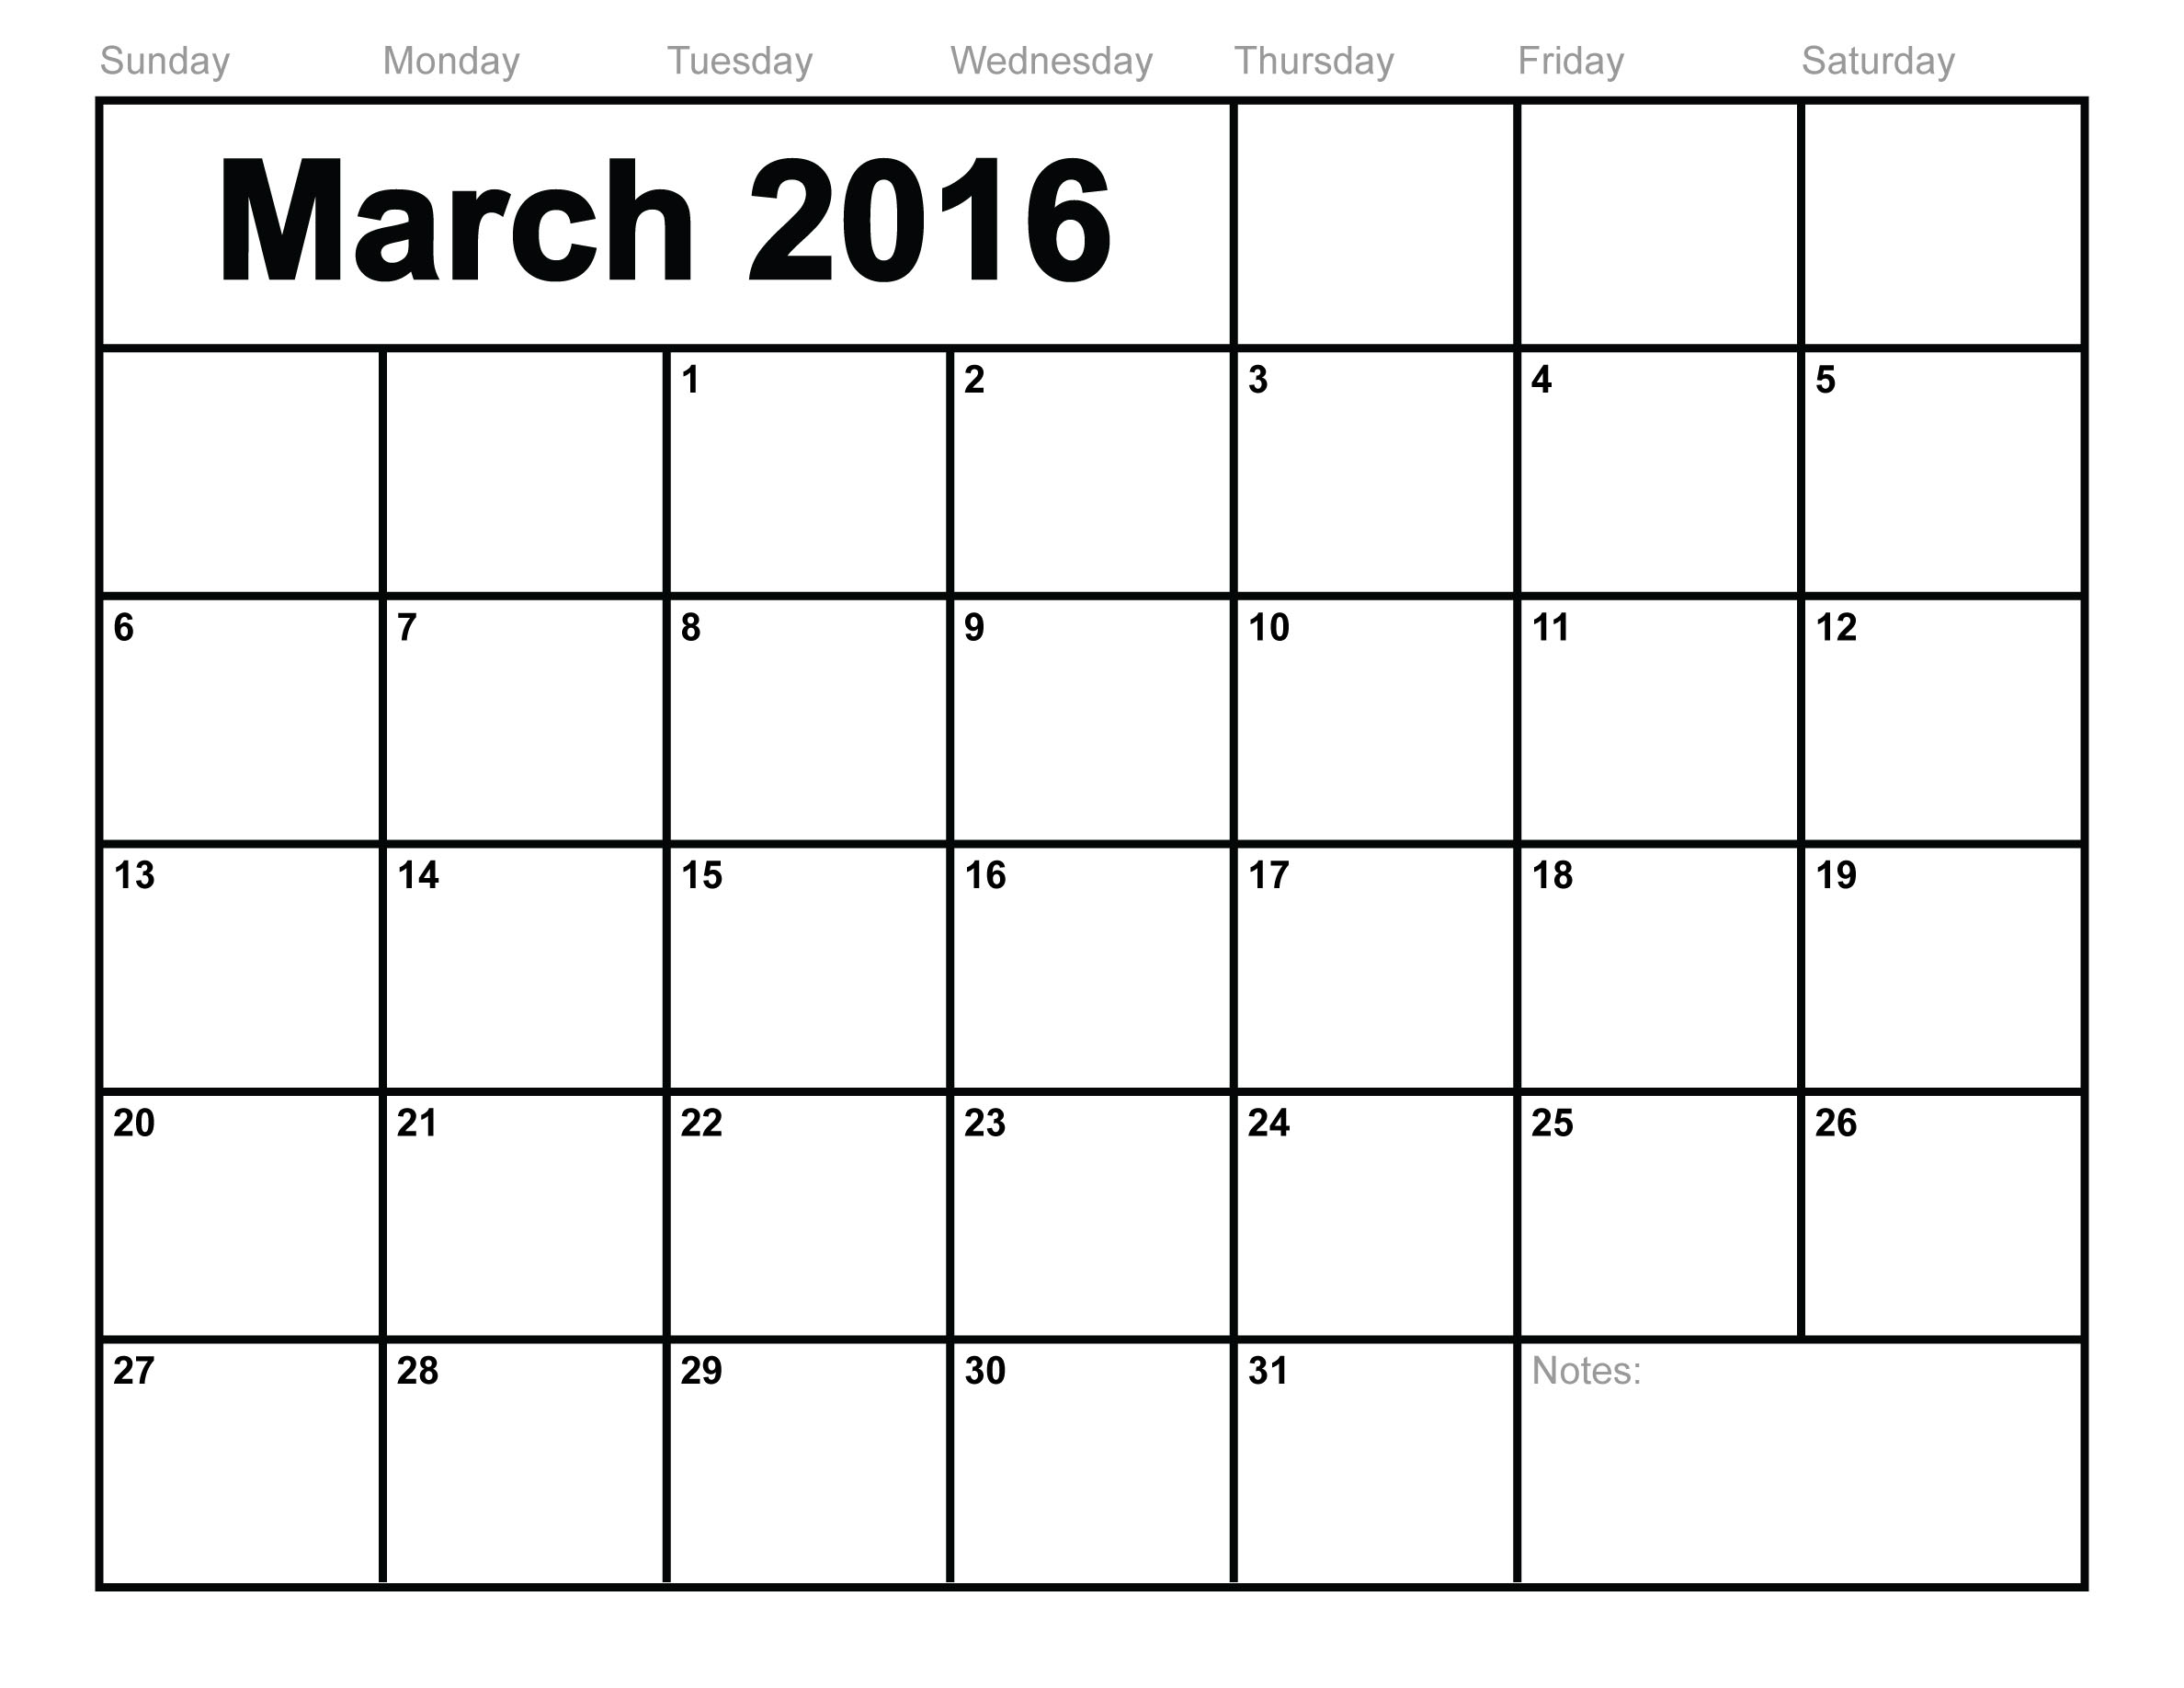 March Month 2016 Blank Calender Printable, March 2016 Blank Calender Printable, March 2016 Blank Calender, March Month 2016 Printable Blank Calender, March 2016 Printable Blank Calender, March 2016 Printable Blank Calenders, March 2016 month Printable Blank Calenders, March Month 2016 Blank Calender, 2016 March Month Blank Calender Printable, 2016 March Blank Calender Printable, 2016 March Blank Calender Printable,